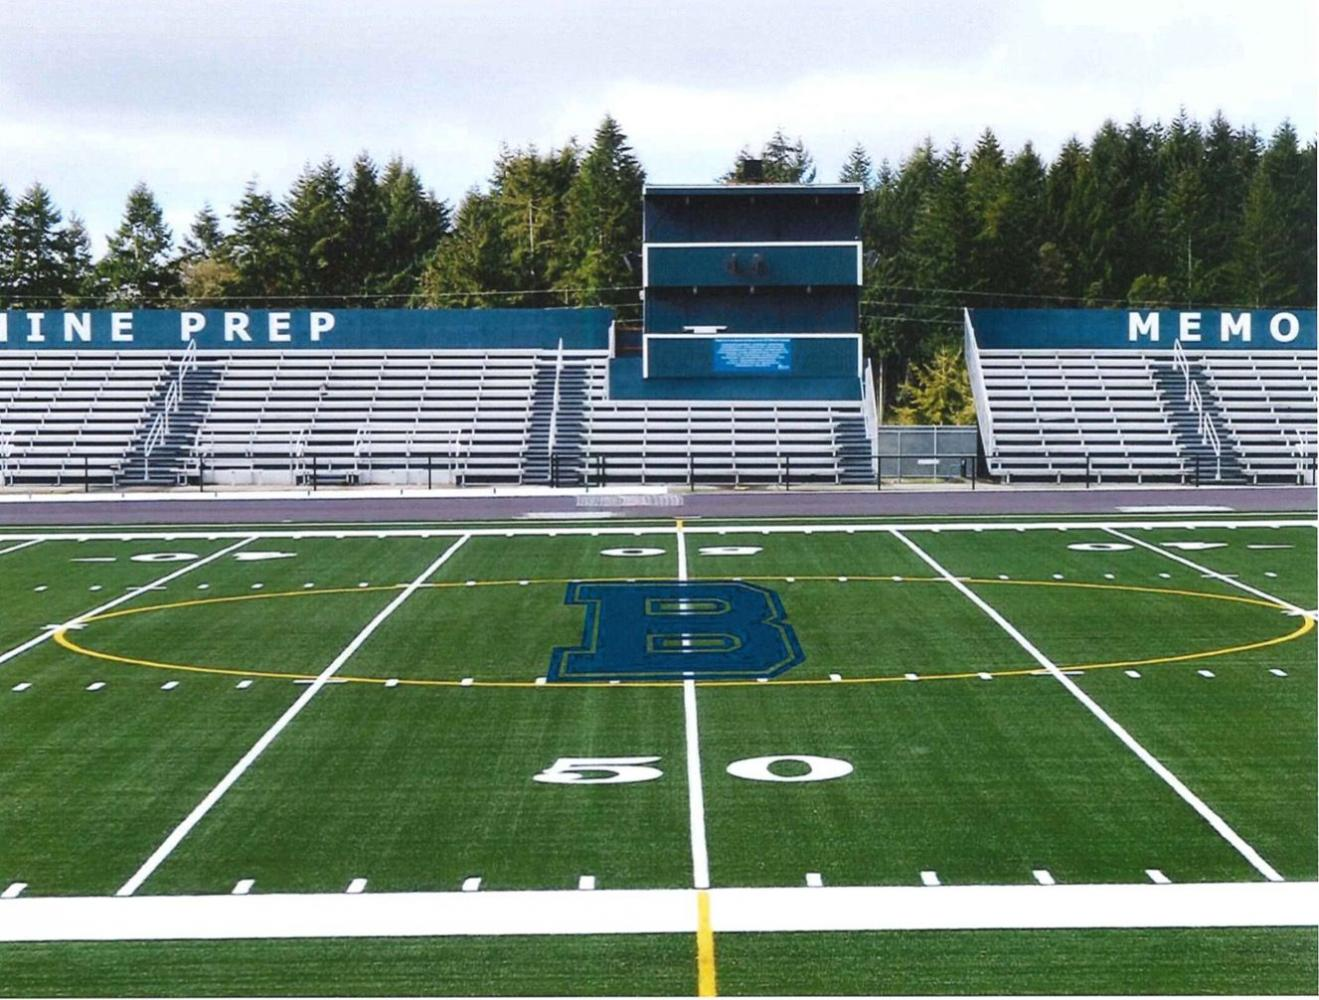 A computer-generated image of the highly anticipated new turf field. Photo courtesy of bellarmineprep.org